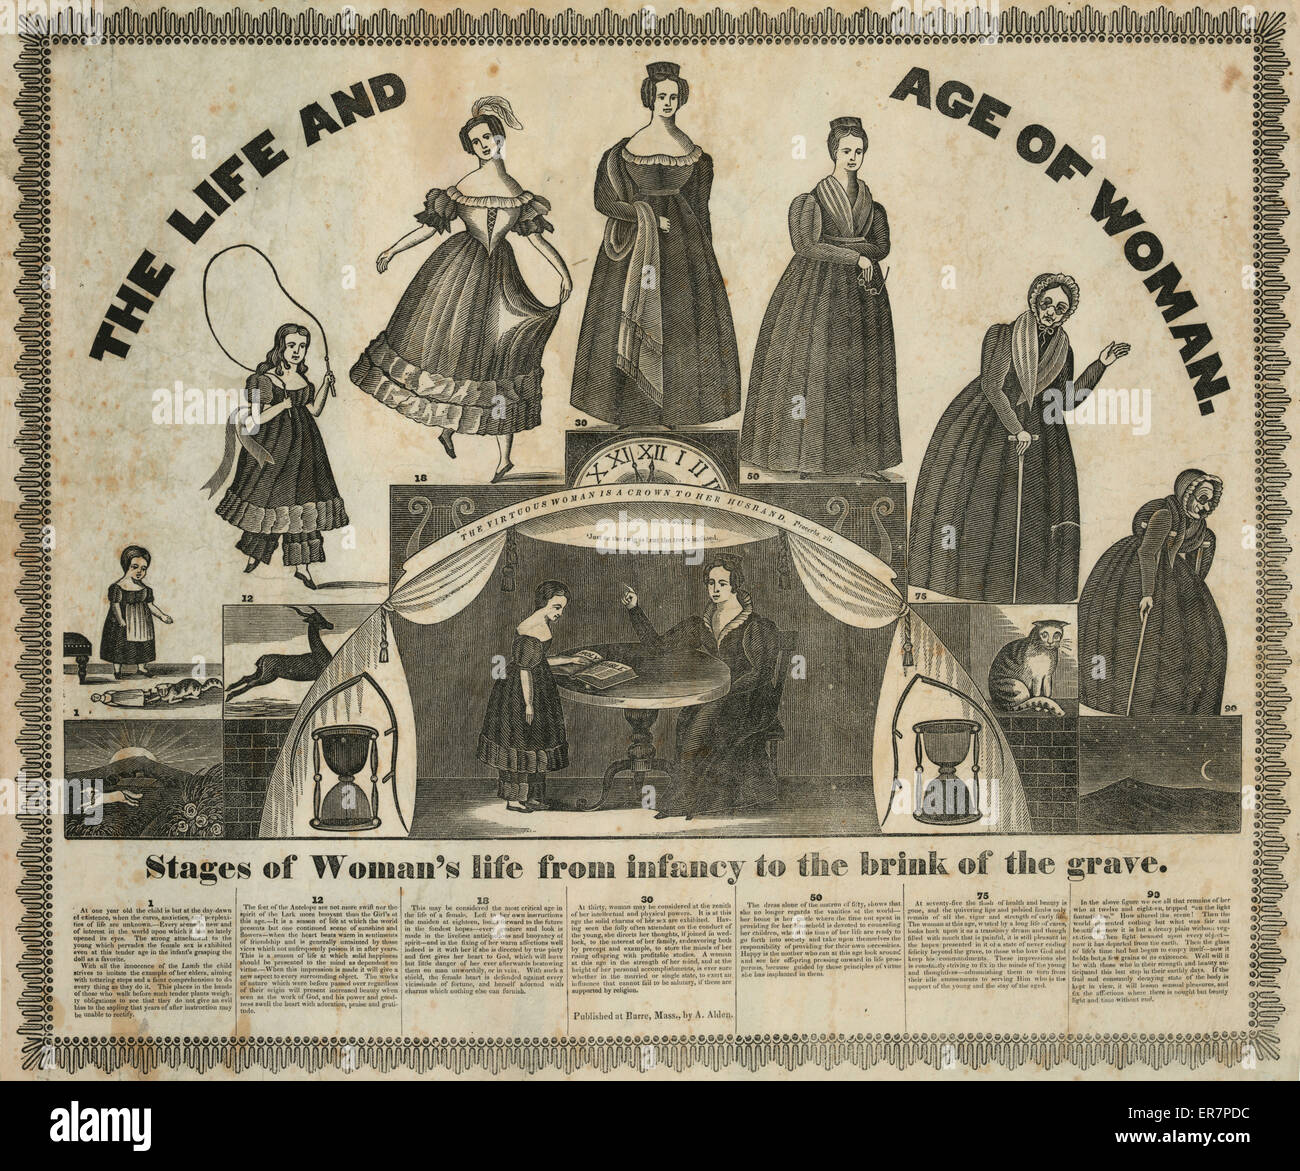 The Life and age of woman, stages of woman's life from the infancy to the brink of the grave. Print shows seven - Stock Image